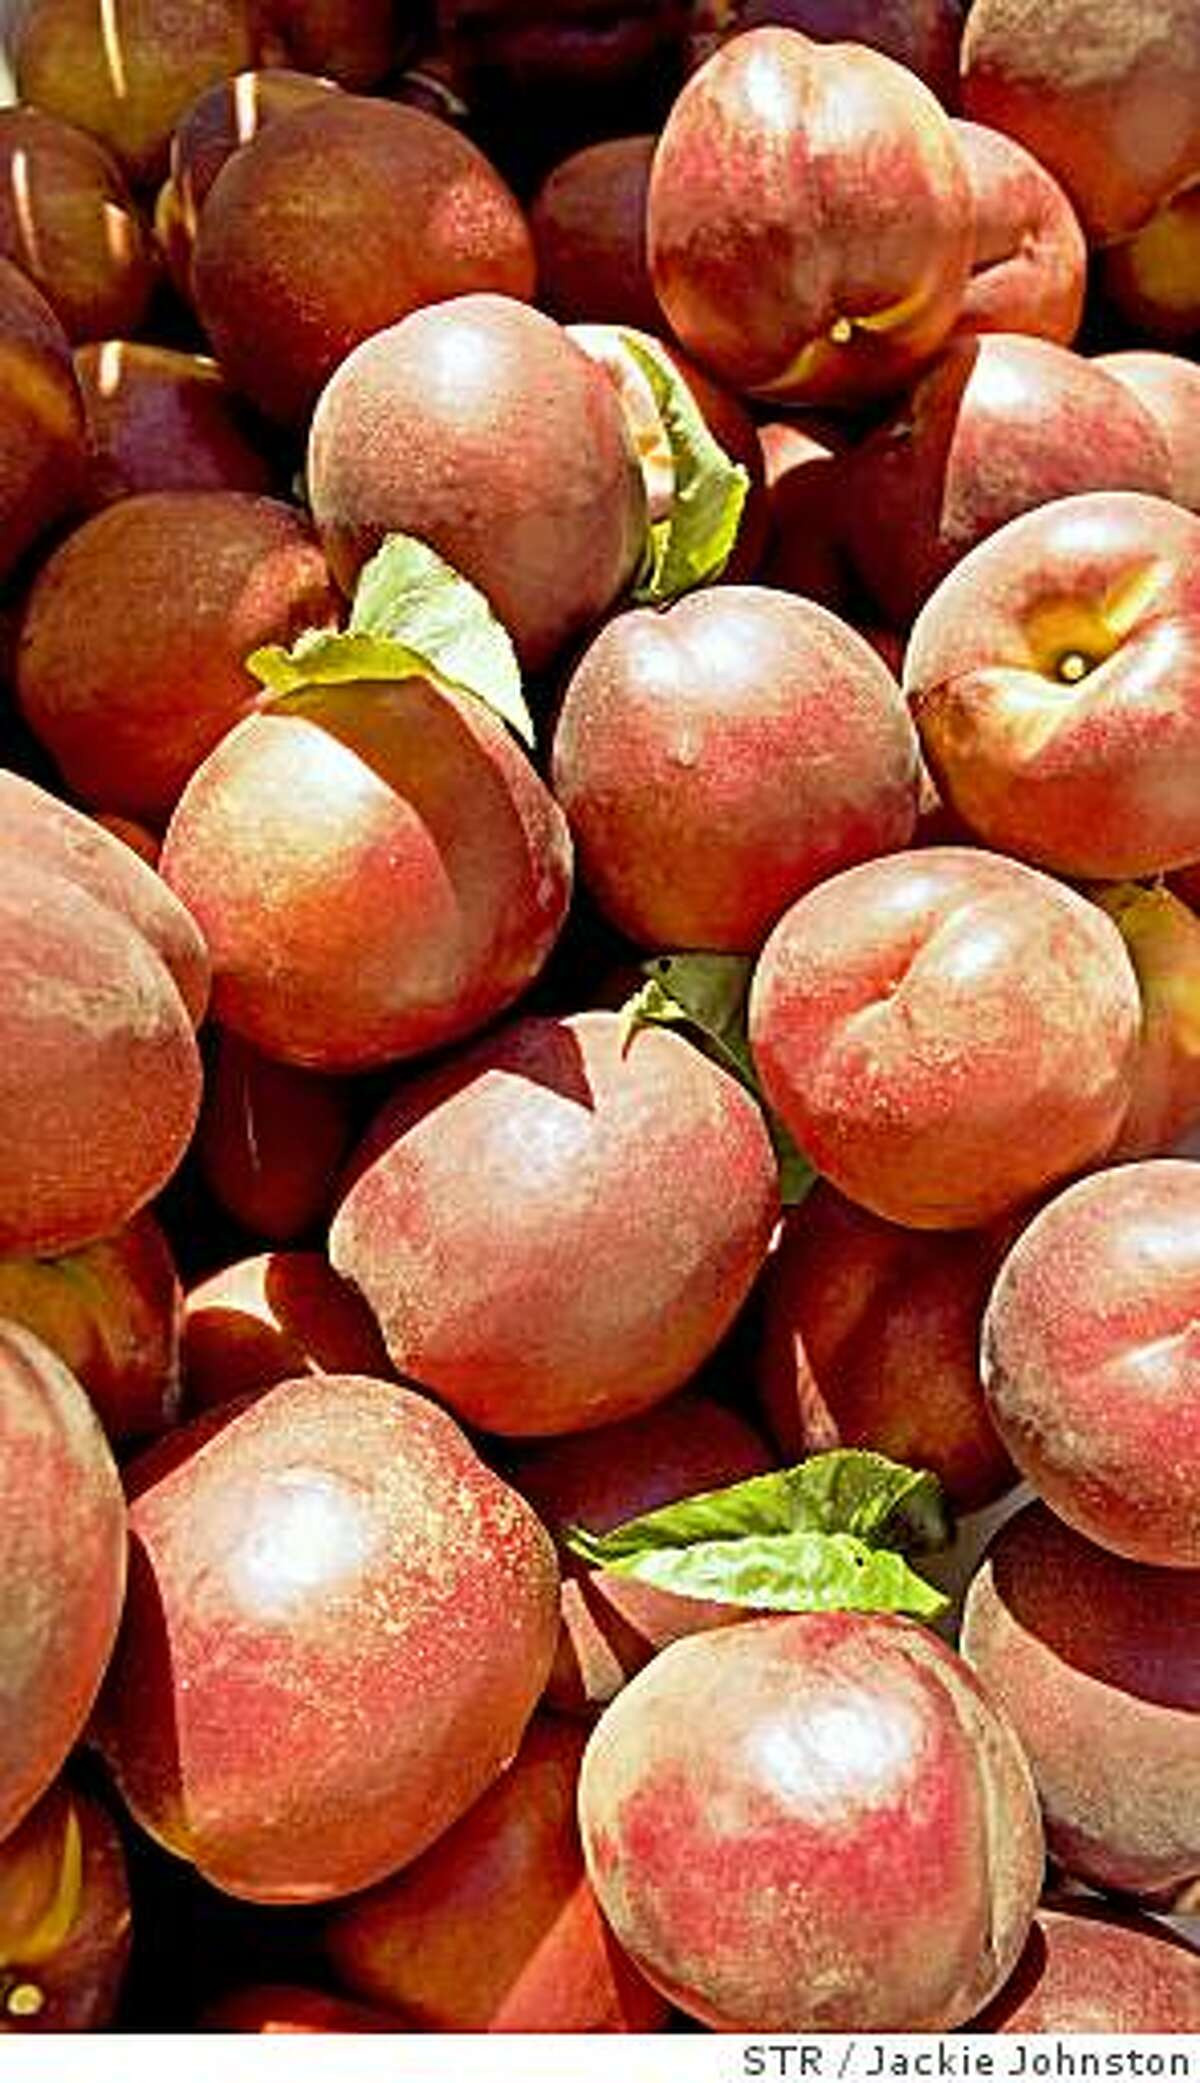 Nectarines await transportation to a packing house from Graystone Orchard in Pasco, Wash., on Thursday, Aug. 16, 2007.